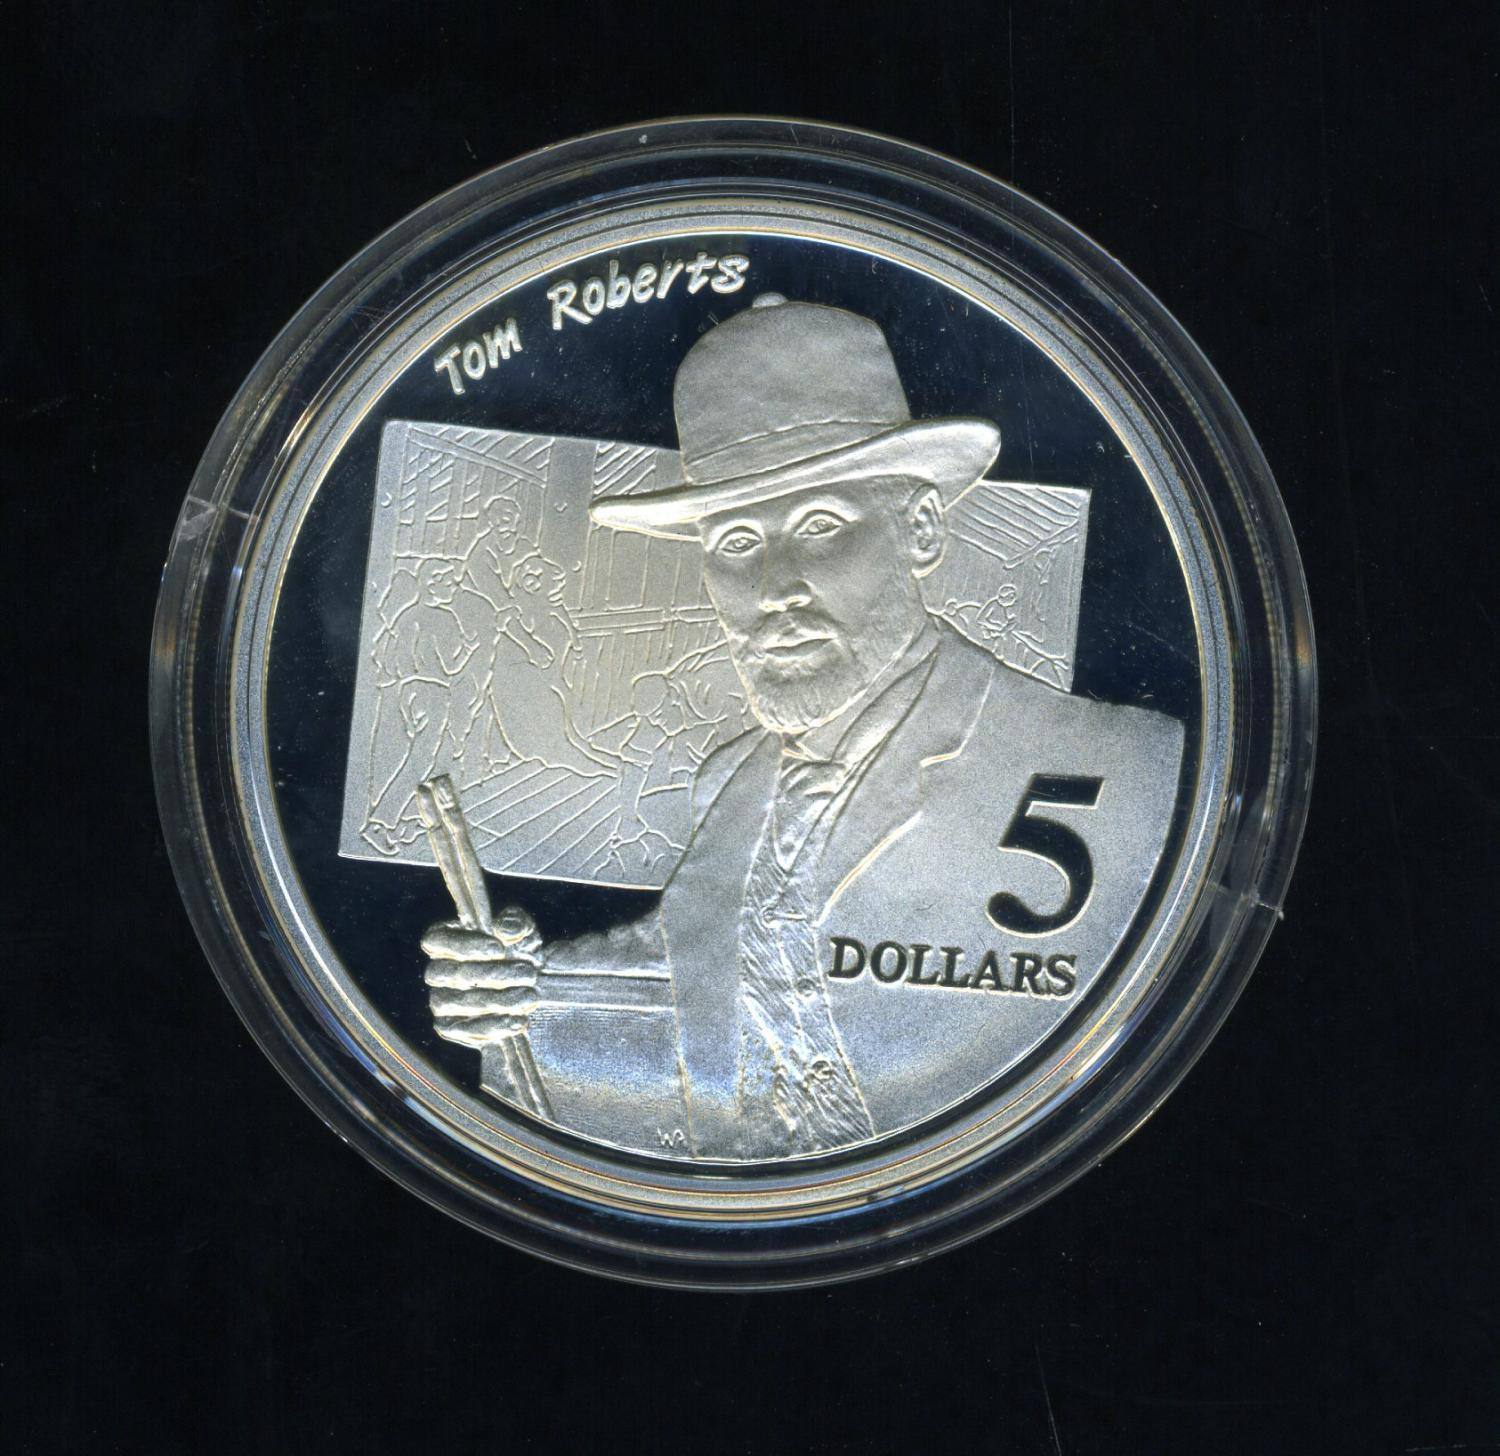 Thumbnail for 1996 Australian $5 Silver Coin From Masterpieces Set - Tom Roberts.  The Coin is Sterling Silver and contains over 1oz of Pure Silver.